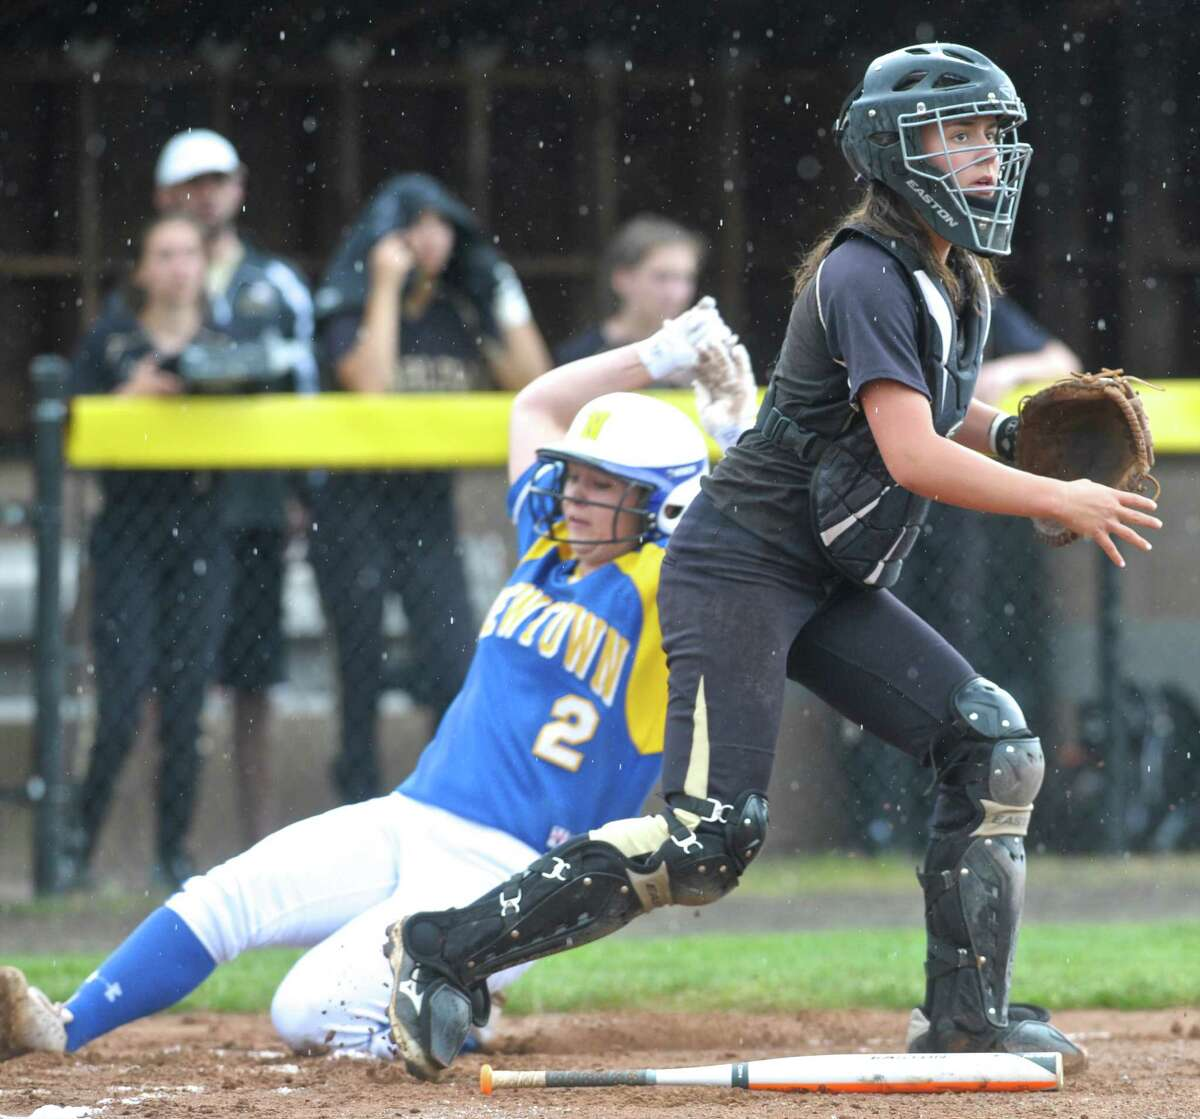 KATIE LAAKSONEN, NEWTOWN: Senior led the Nighthawks to the SWC championship and the Class LL quarterfinals ... Hit a two-run single in the SWC title game ... All-State Class LL, All-SWC first team.